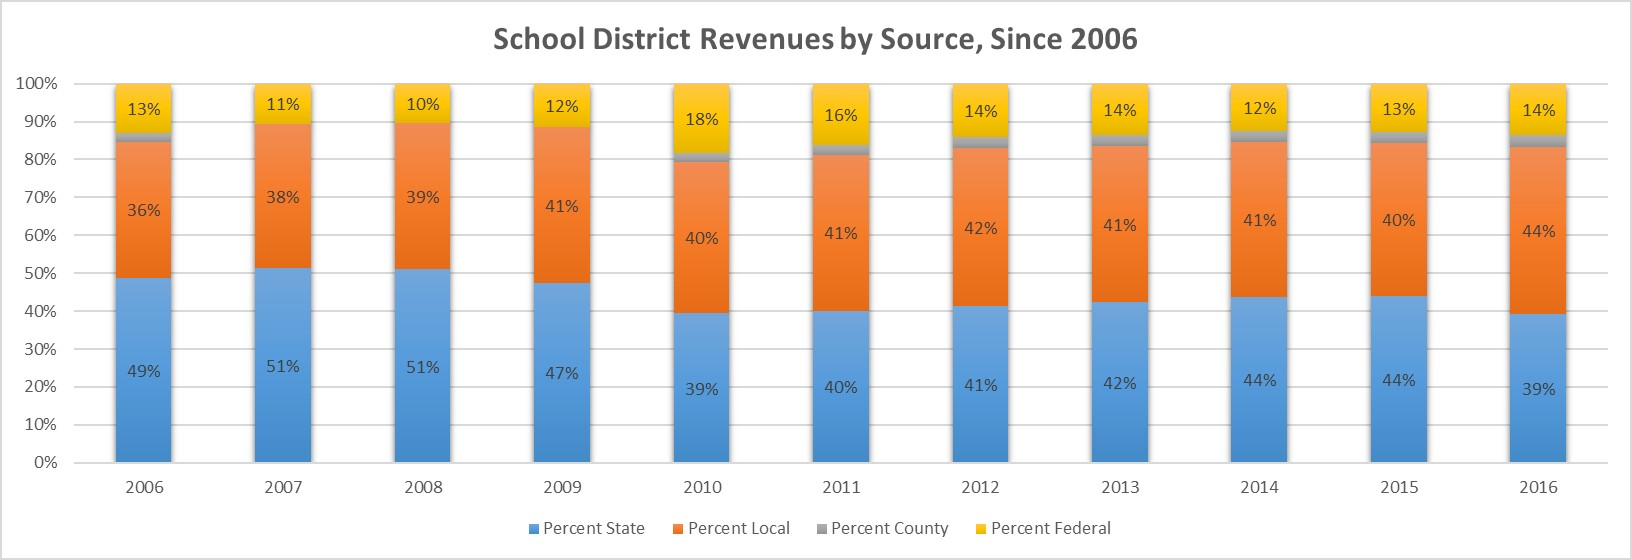 State of Arizona sued over capital funding cuts School-Revenues-by-Source-Chart